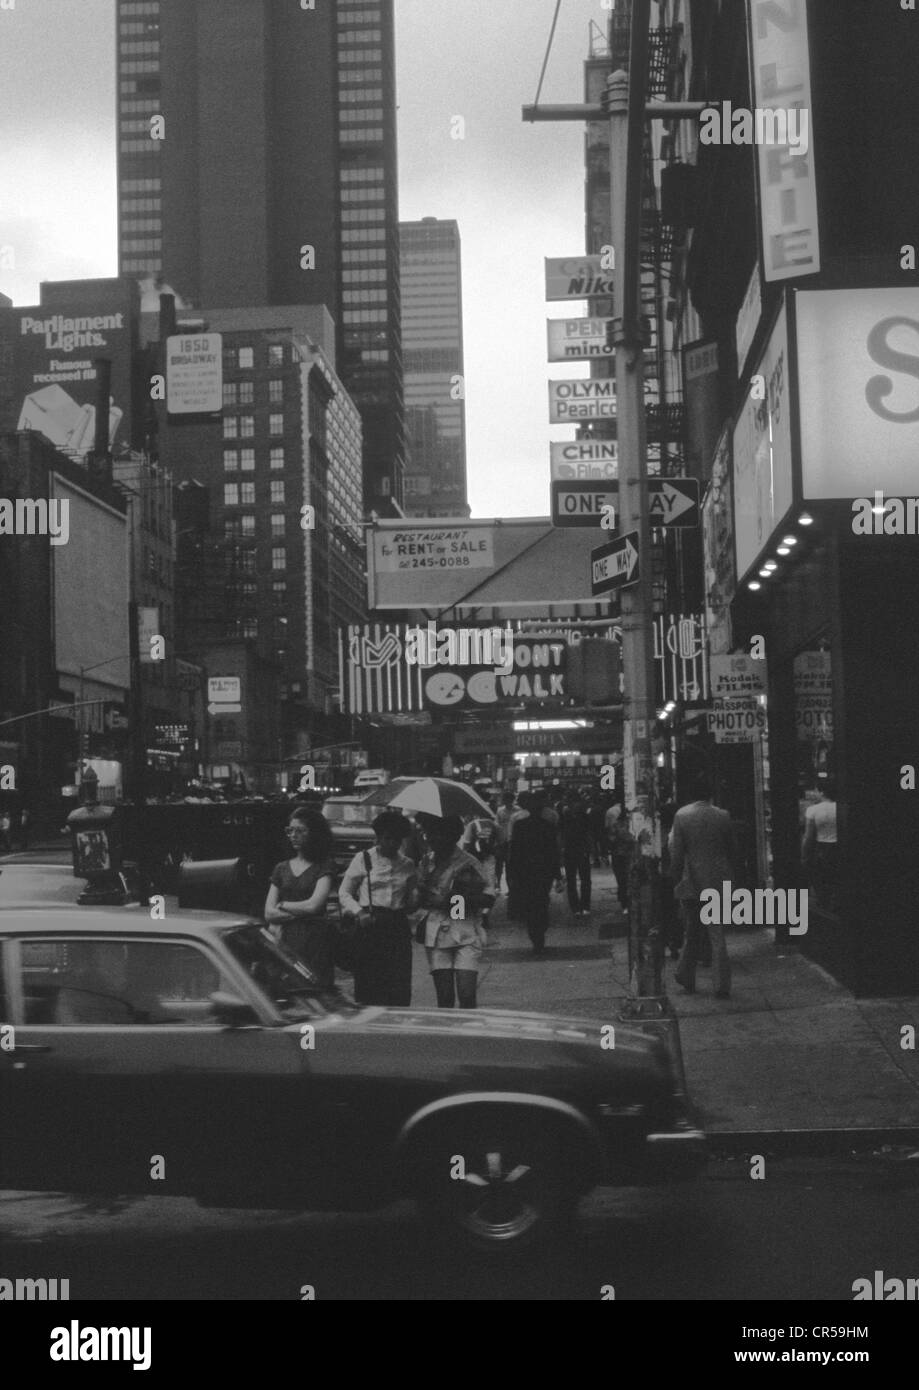 Street photo, Downtown New York, archival photo, August 1981. - Stock Image